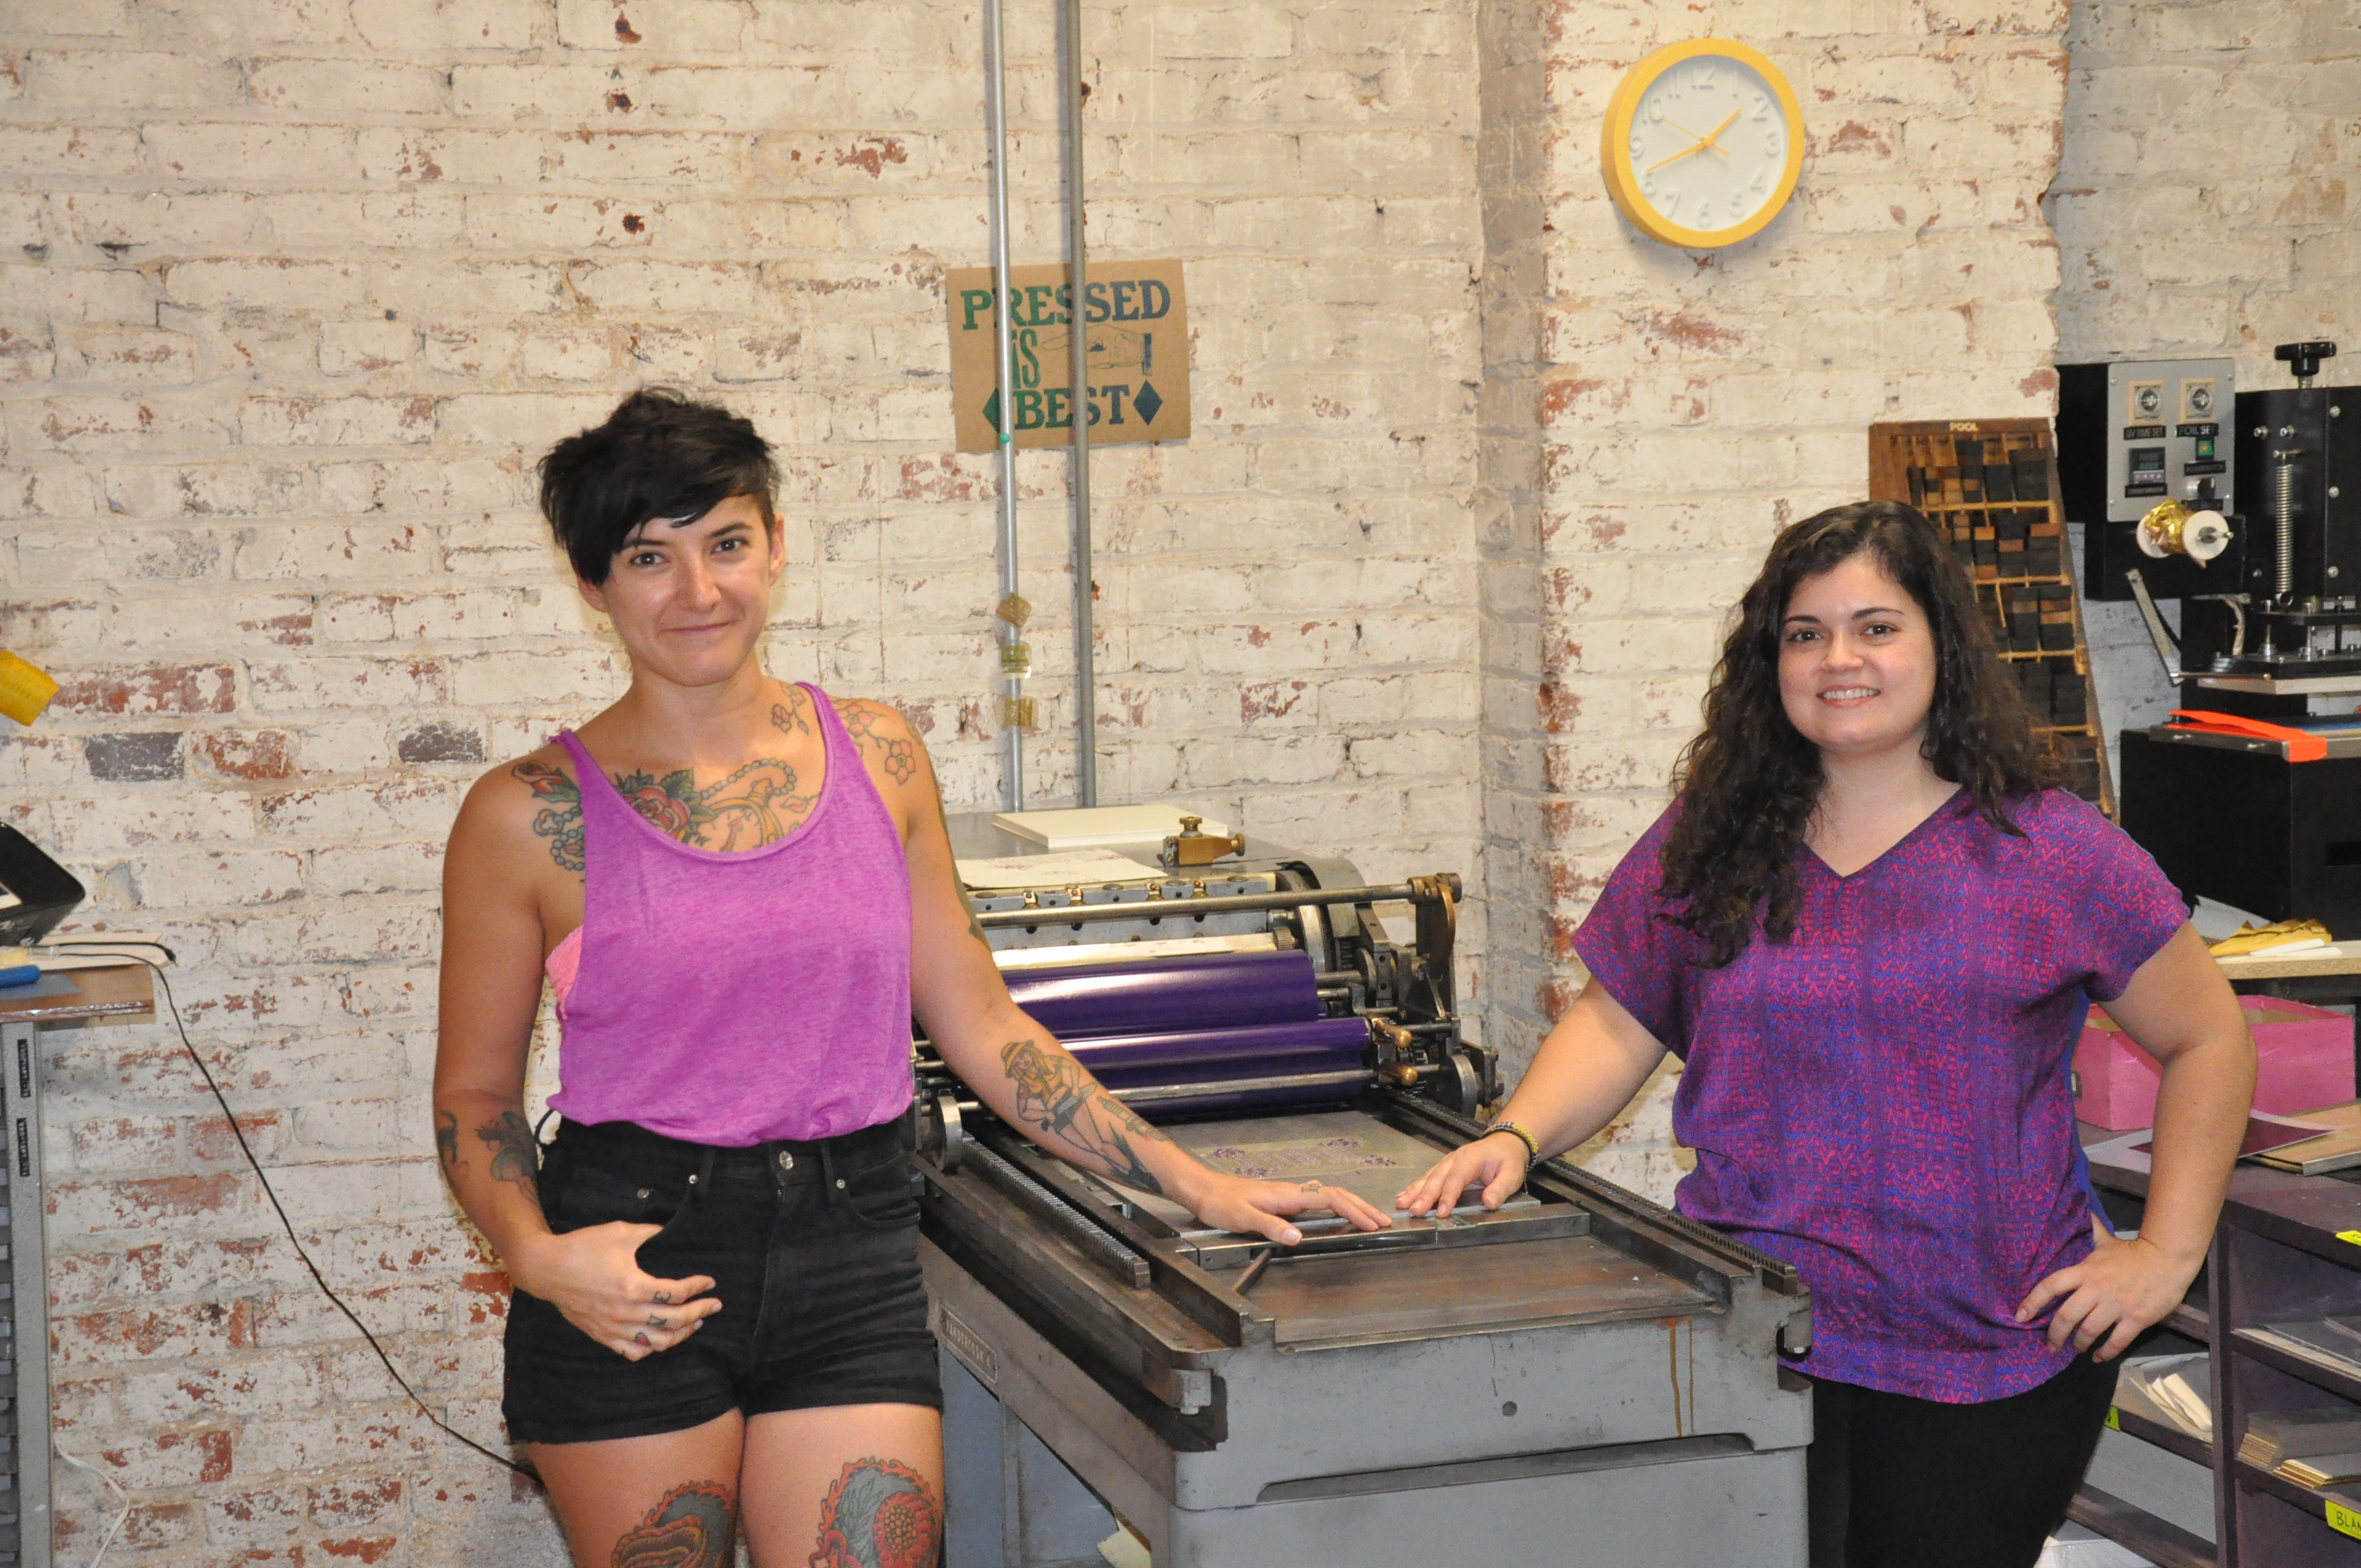 Typecase Industries creates new designs with historic machinery